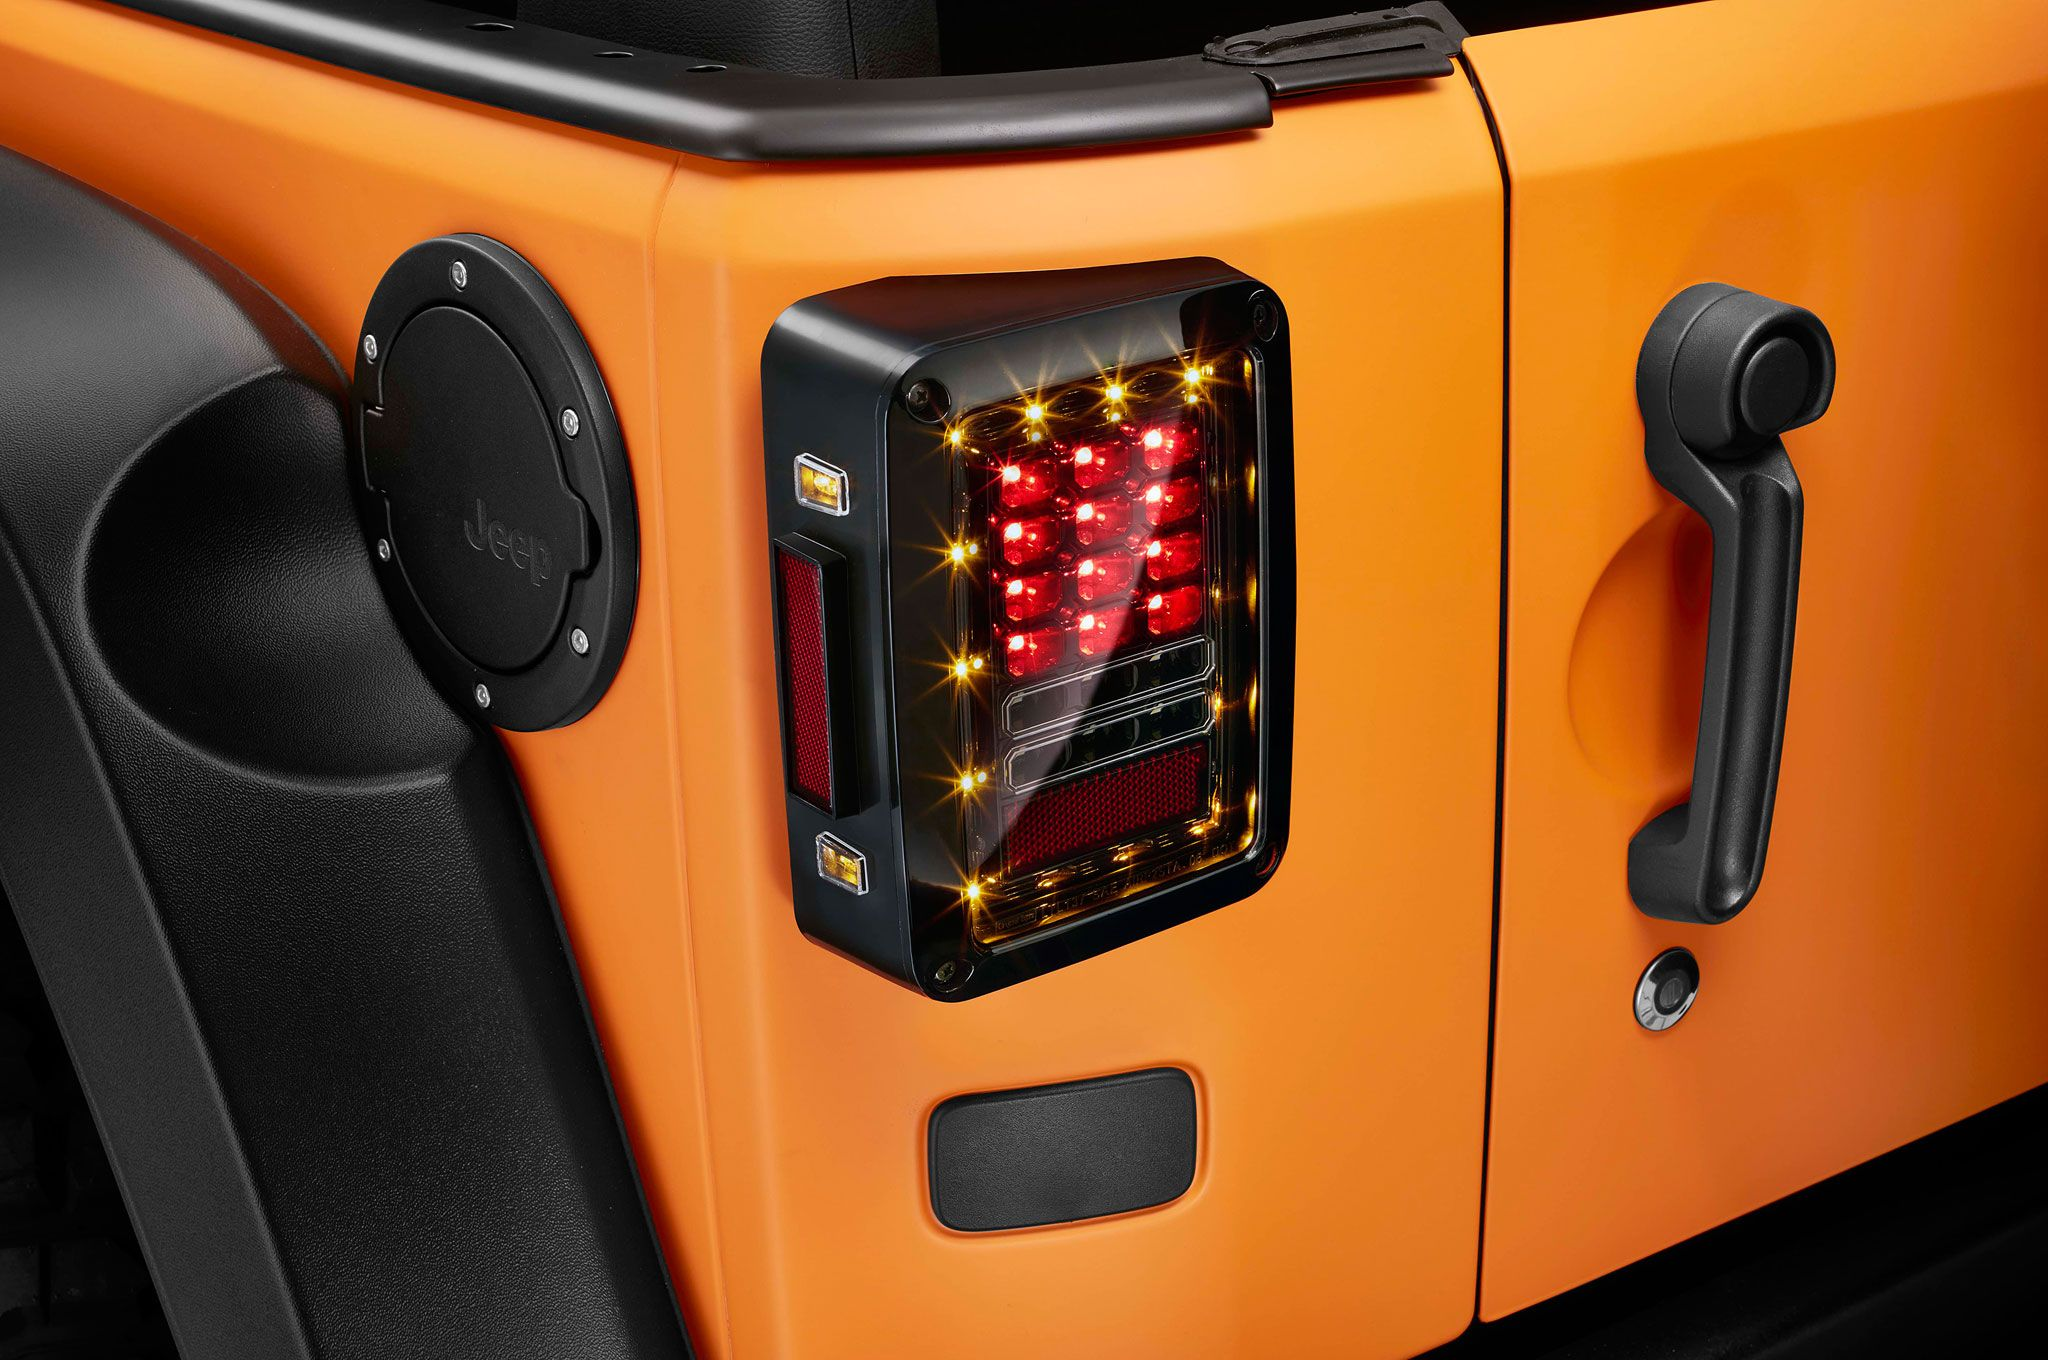 2015 Jeep Jk Tail Light Wiring Diagram Content Resource Of Wrangler Rubicon Sunriser Frankfurt Taillight Vj Drives Rh Vjdrivestacoma Com Harness Third Brake